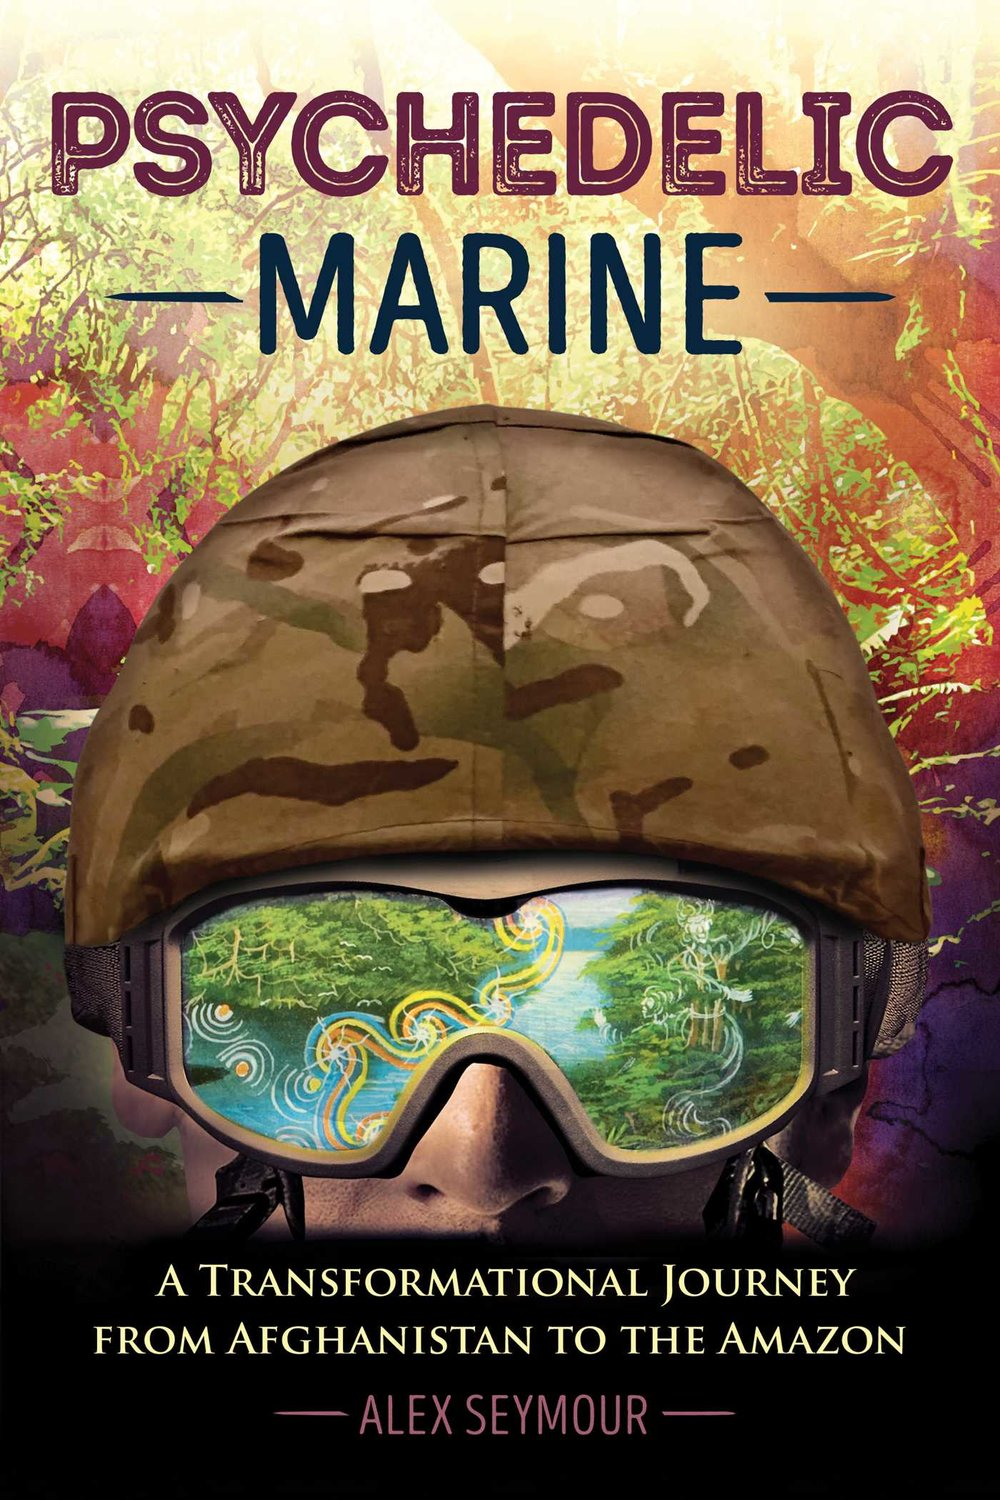 Psychedelic Marine - A Transformational Journey from Afghanistan to the Amazon!